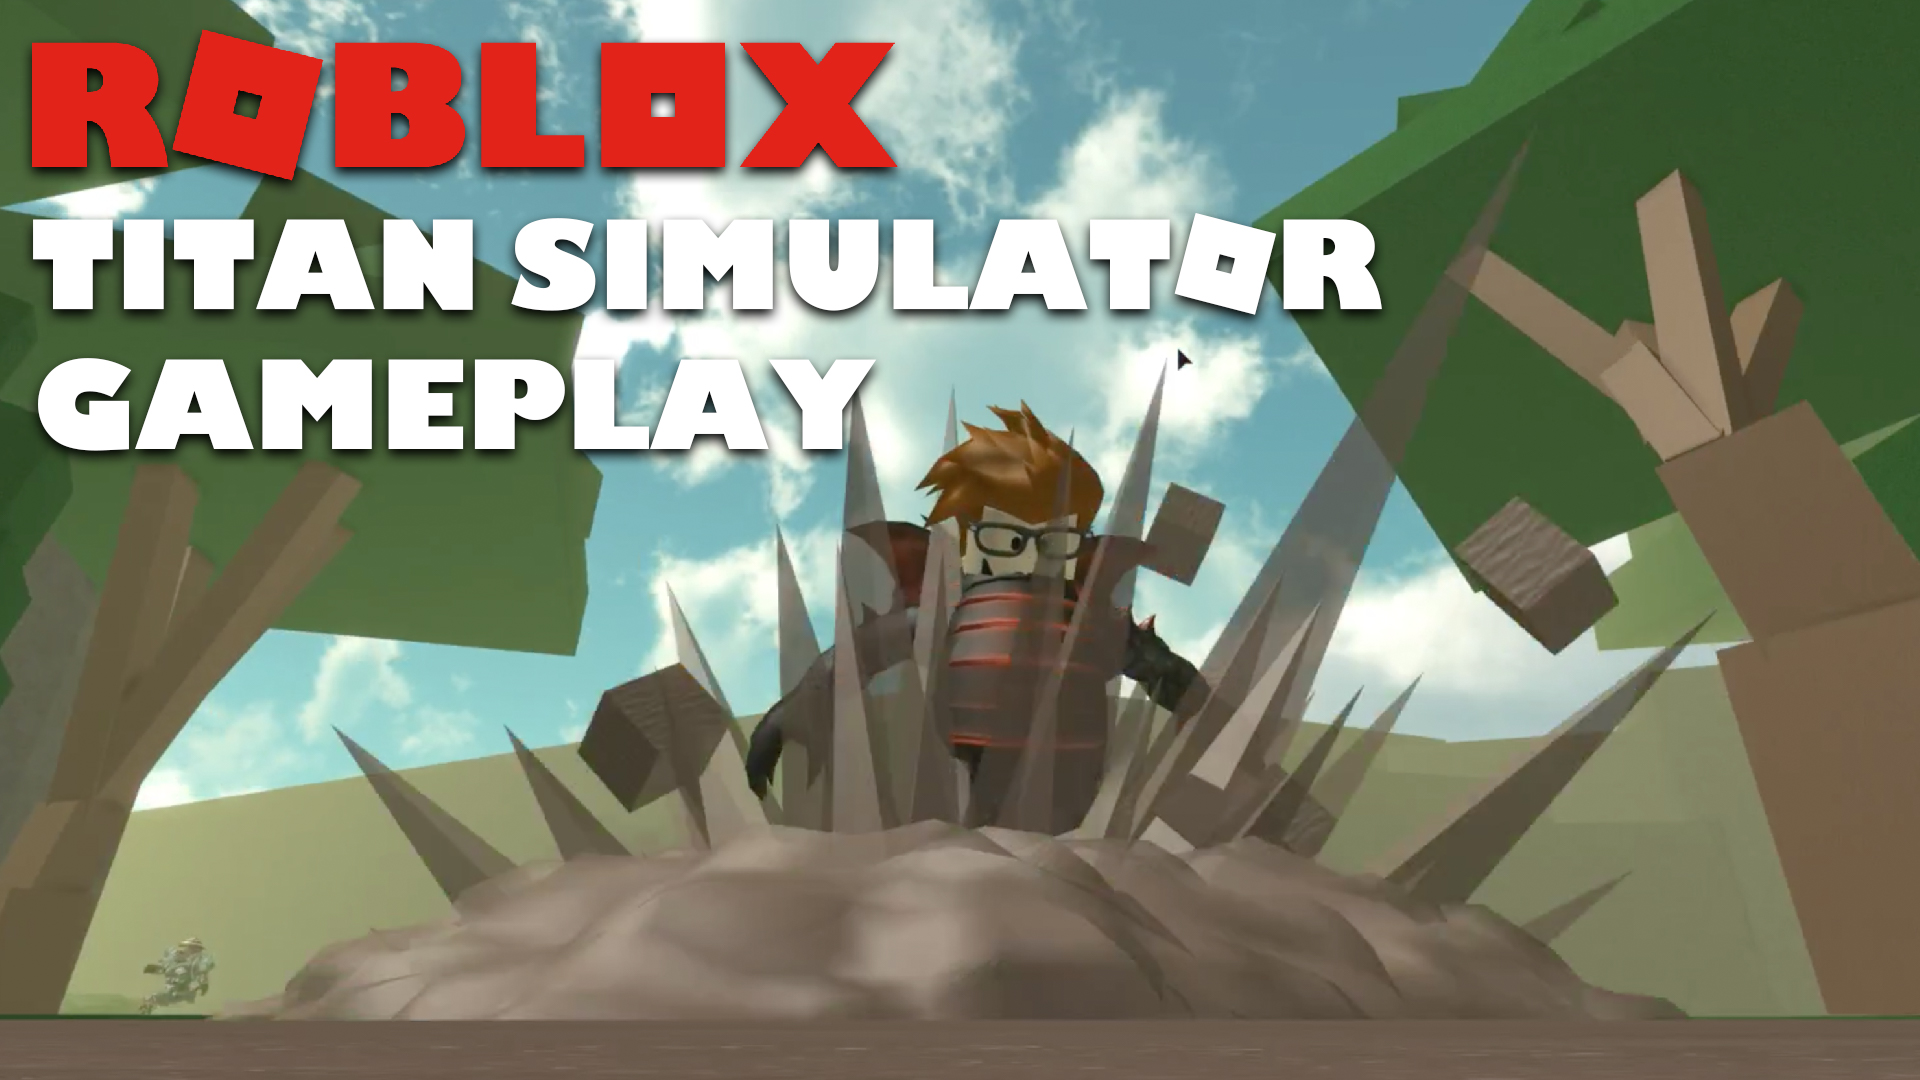 Adventure Story Roblox Gameplay Amazon Com Watch Clip Roblox Fighting Games Gameplay Hrithik Prime Video